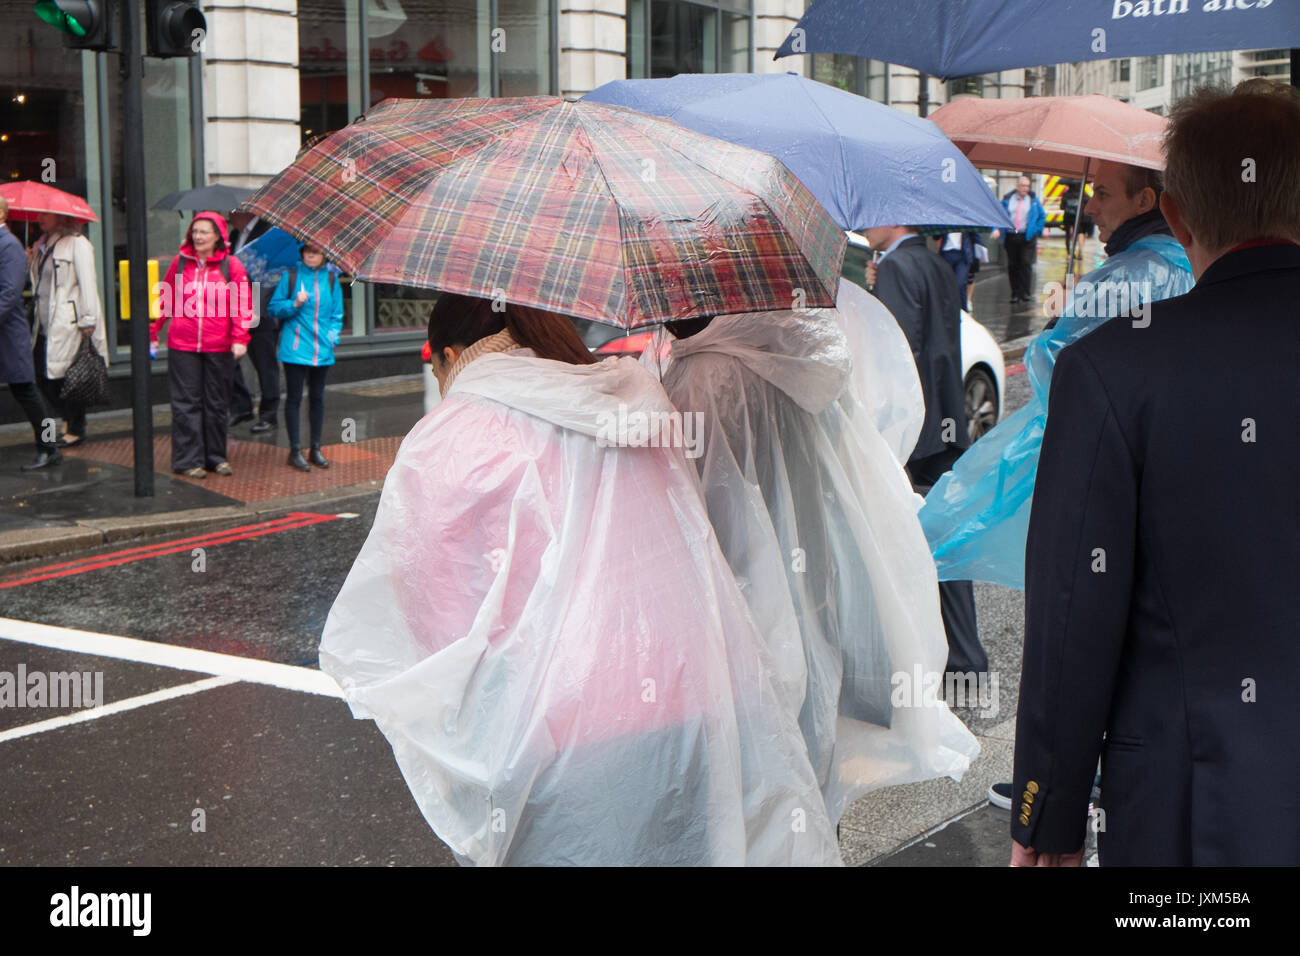 Tourists,wearing,ponchos,Torrential,all day,Rainy,rain,day,August,summer,umbrella,umbrellas,in,The City,City,business,district,London,England,U.K.,UK, - Stock Image